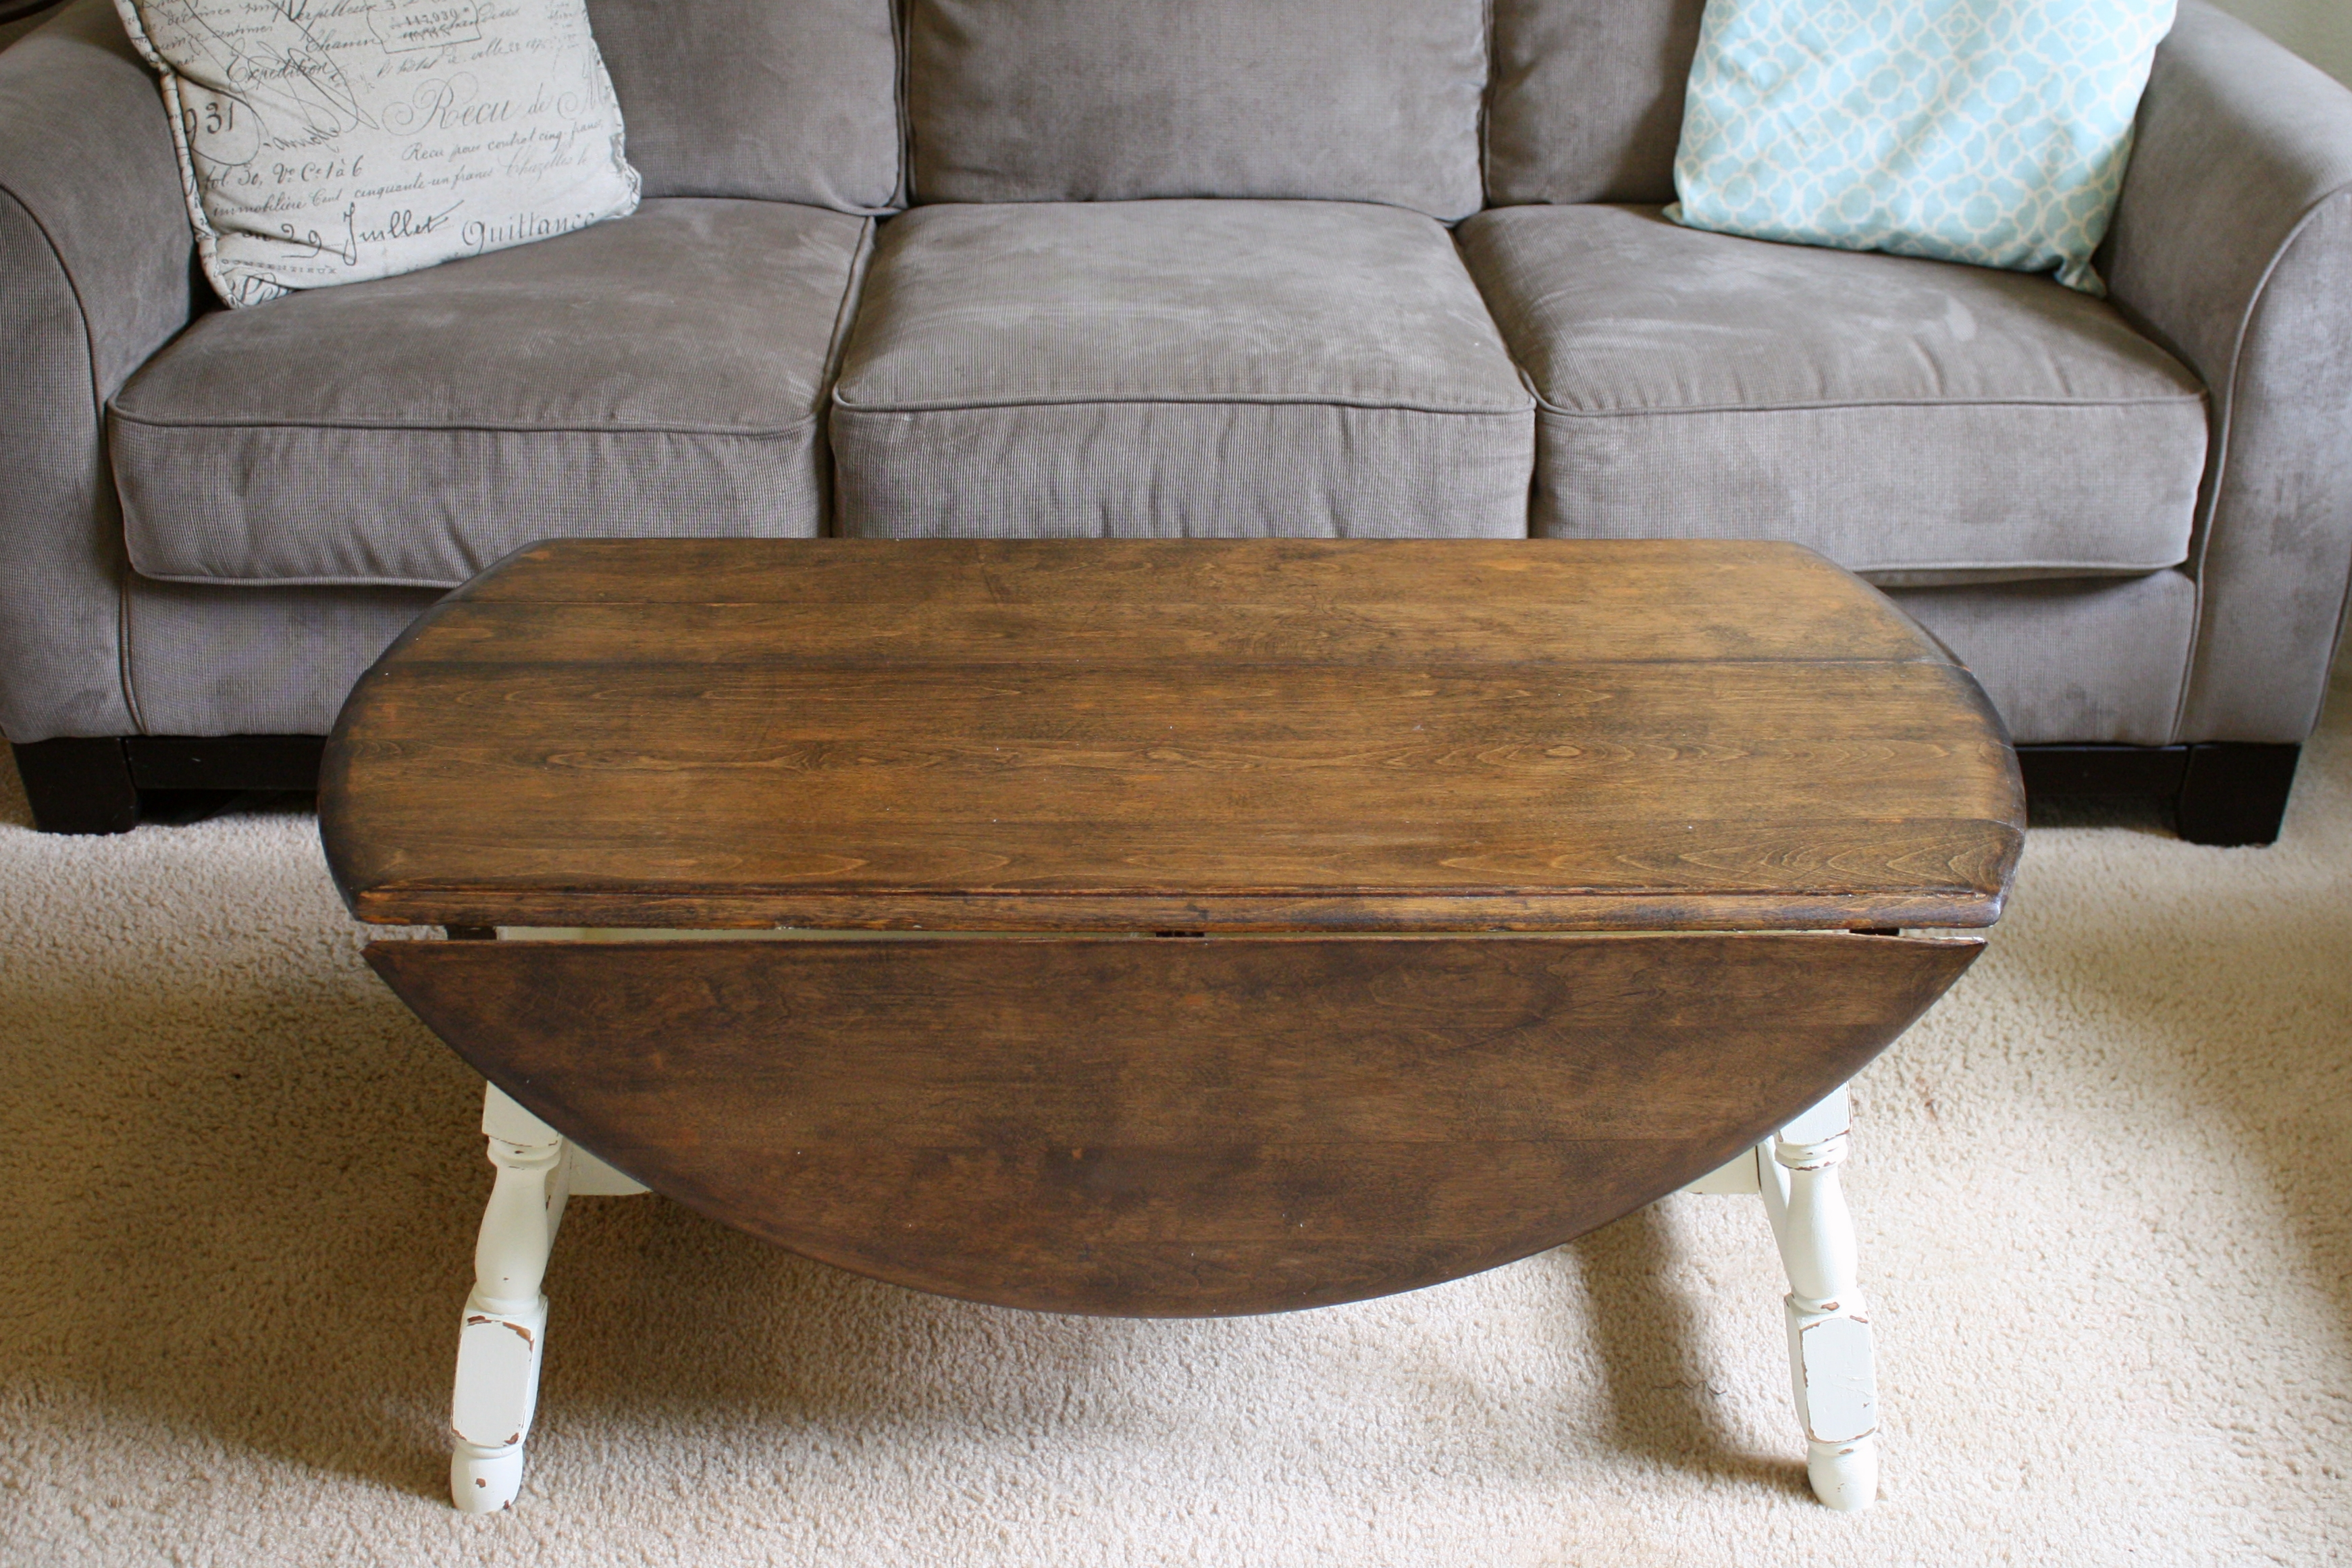 Wooden Drop Leaf Coffee Table Image And Description